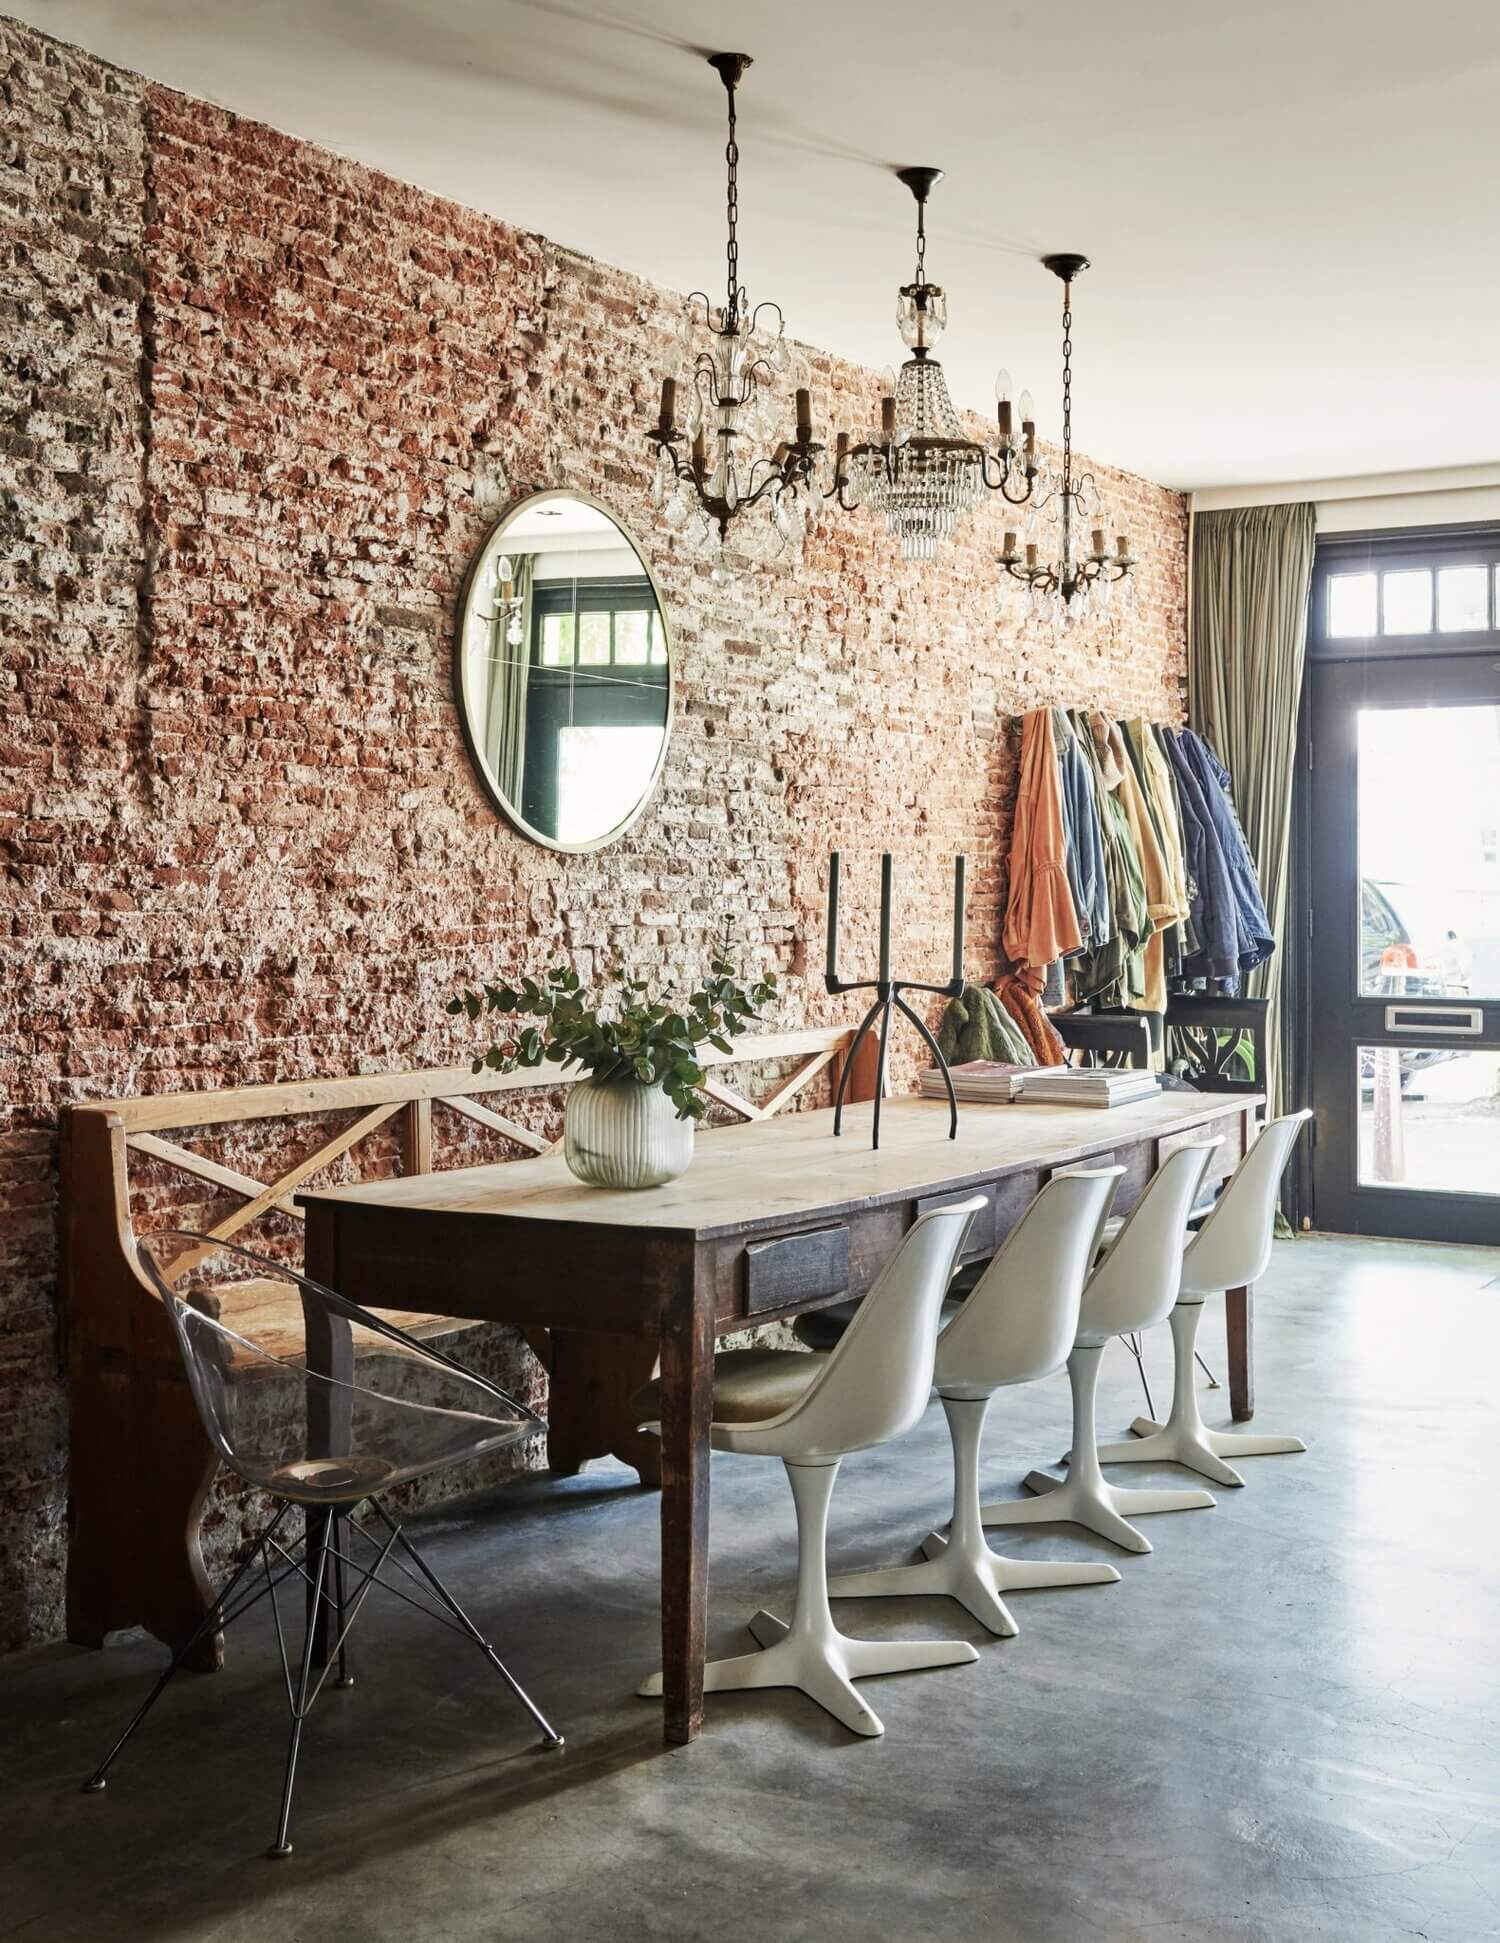 Natural Tones and Industrial Elements in an Amsterdam Home